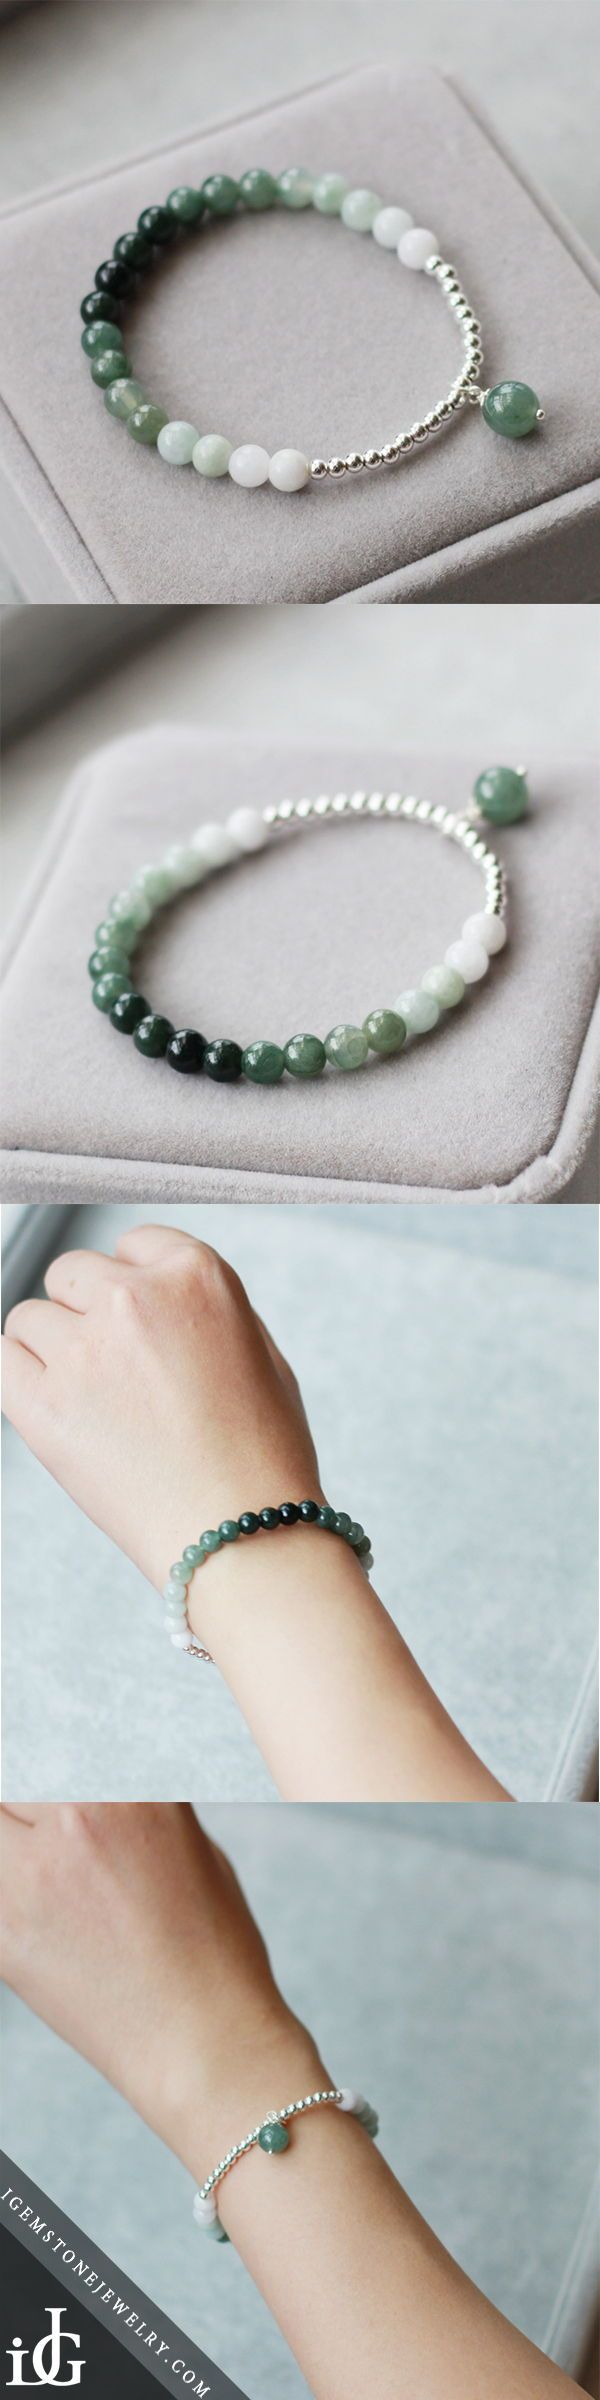 Awesome Green Jade Beaded Bracelet Handmade Gemstone Jewelry Accessories Gifts Women bea…